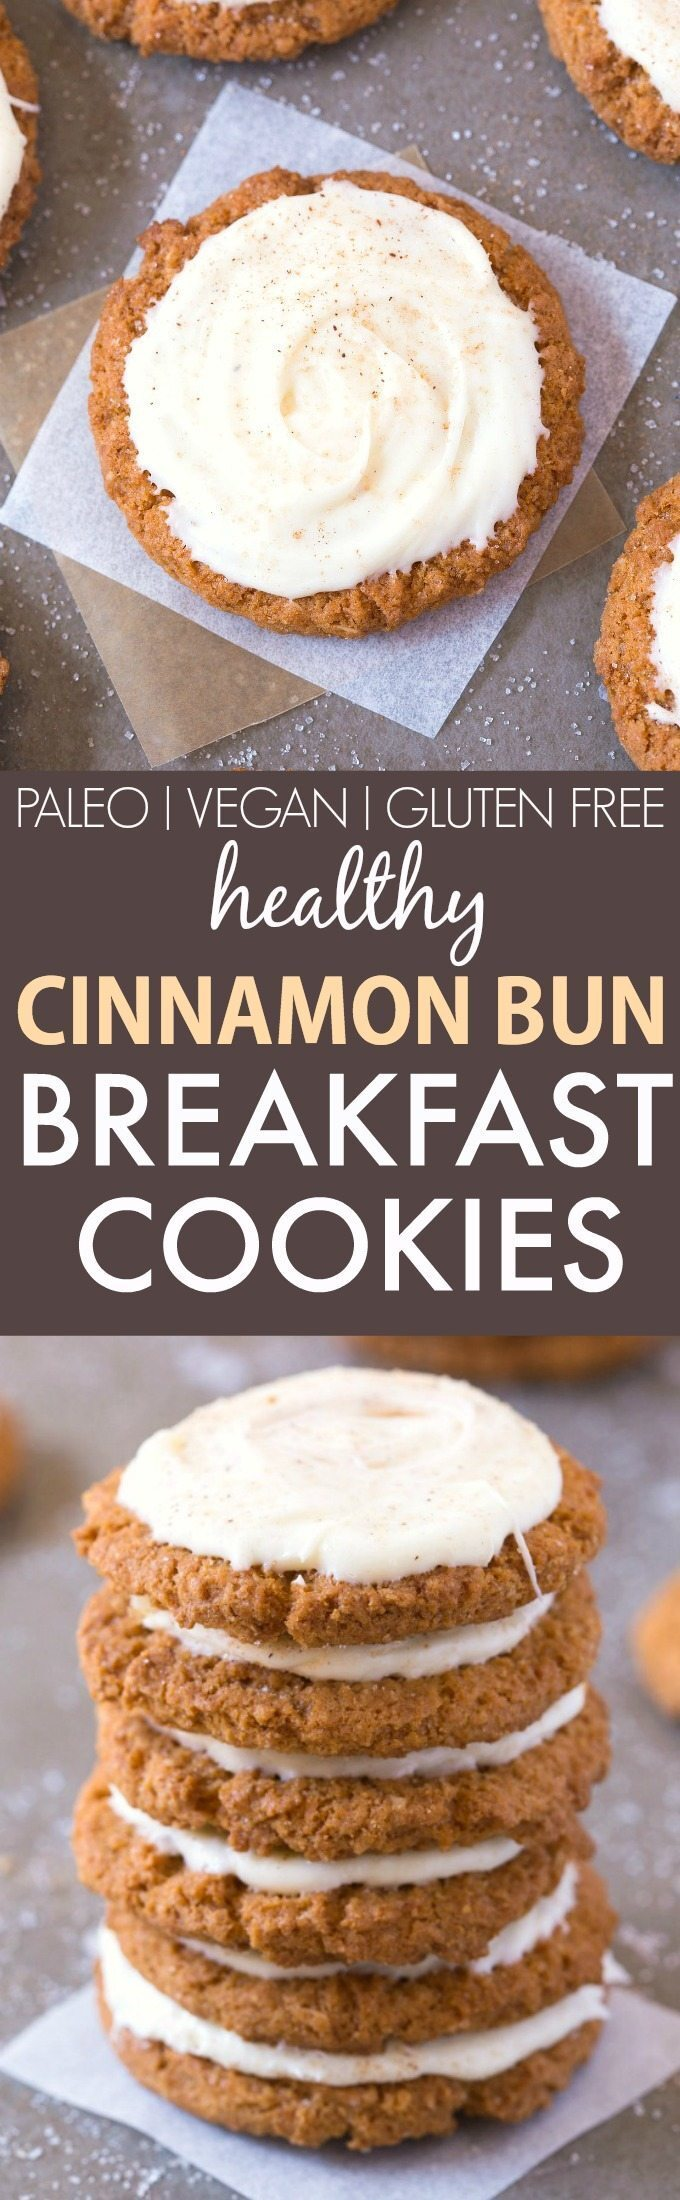 Healthy Cinnamon Bun Breakfast Cookies